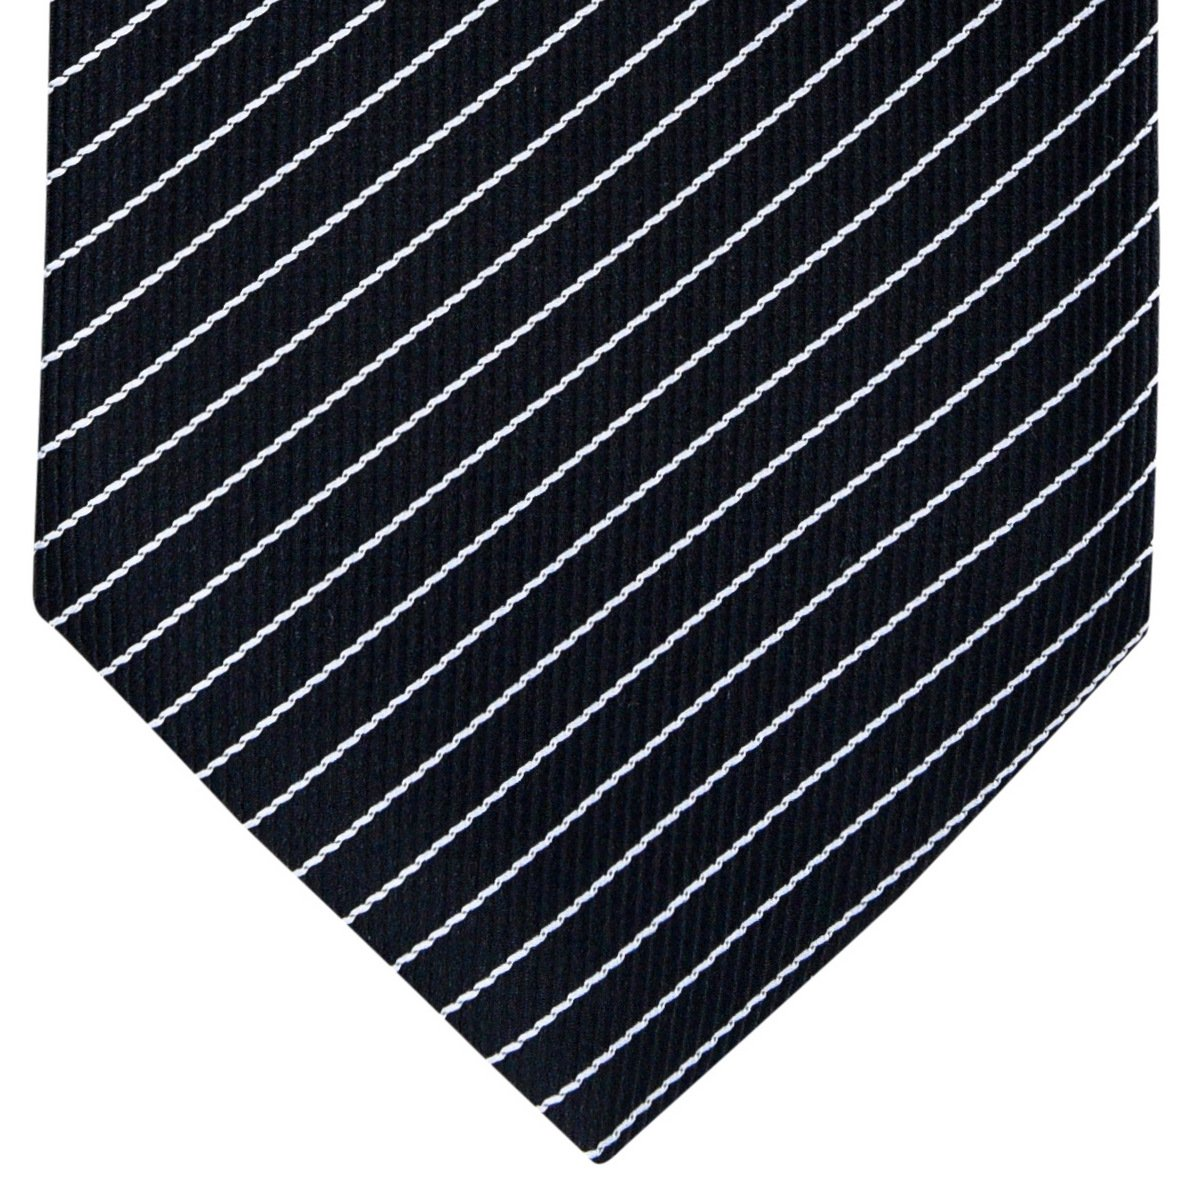 Various Colors 8-10 years Retreez Stylish Pin Stripes Woven Boys Tie